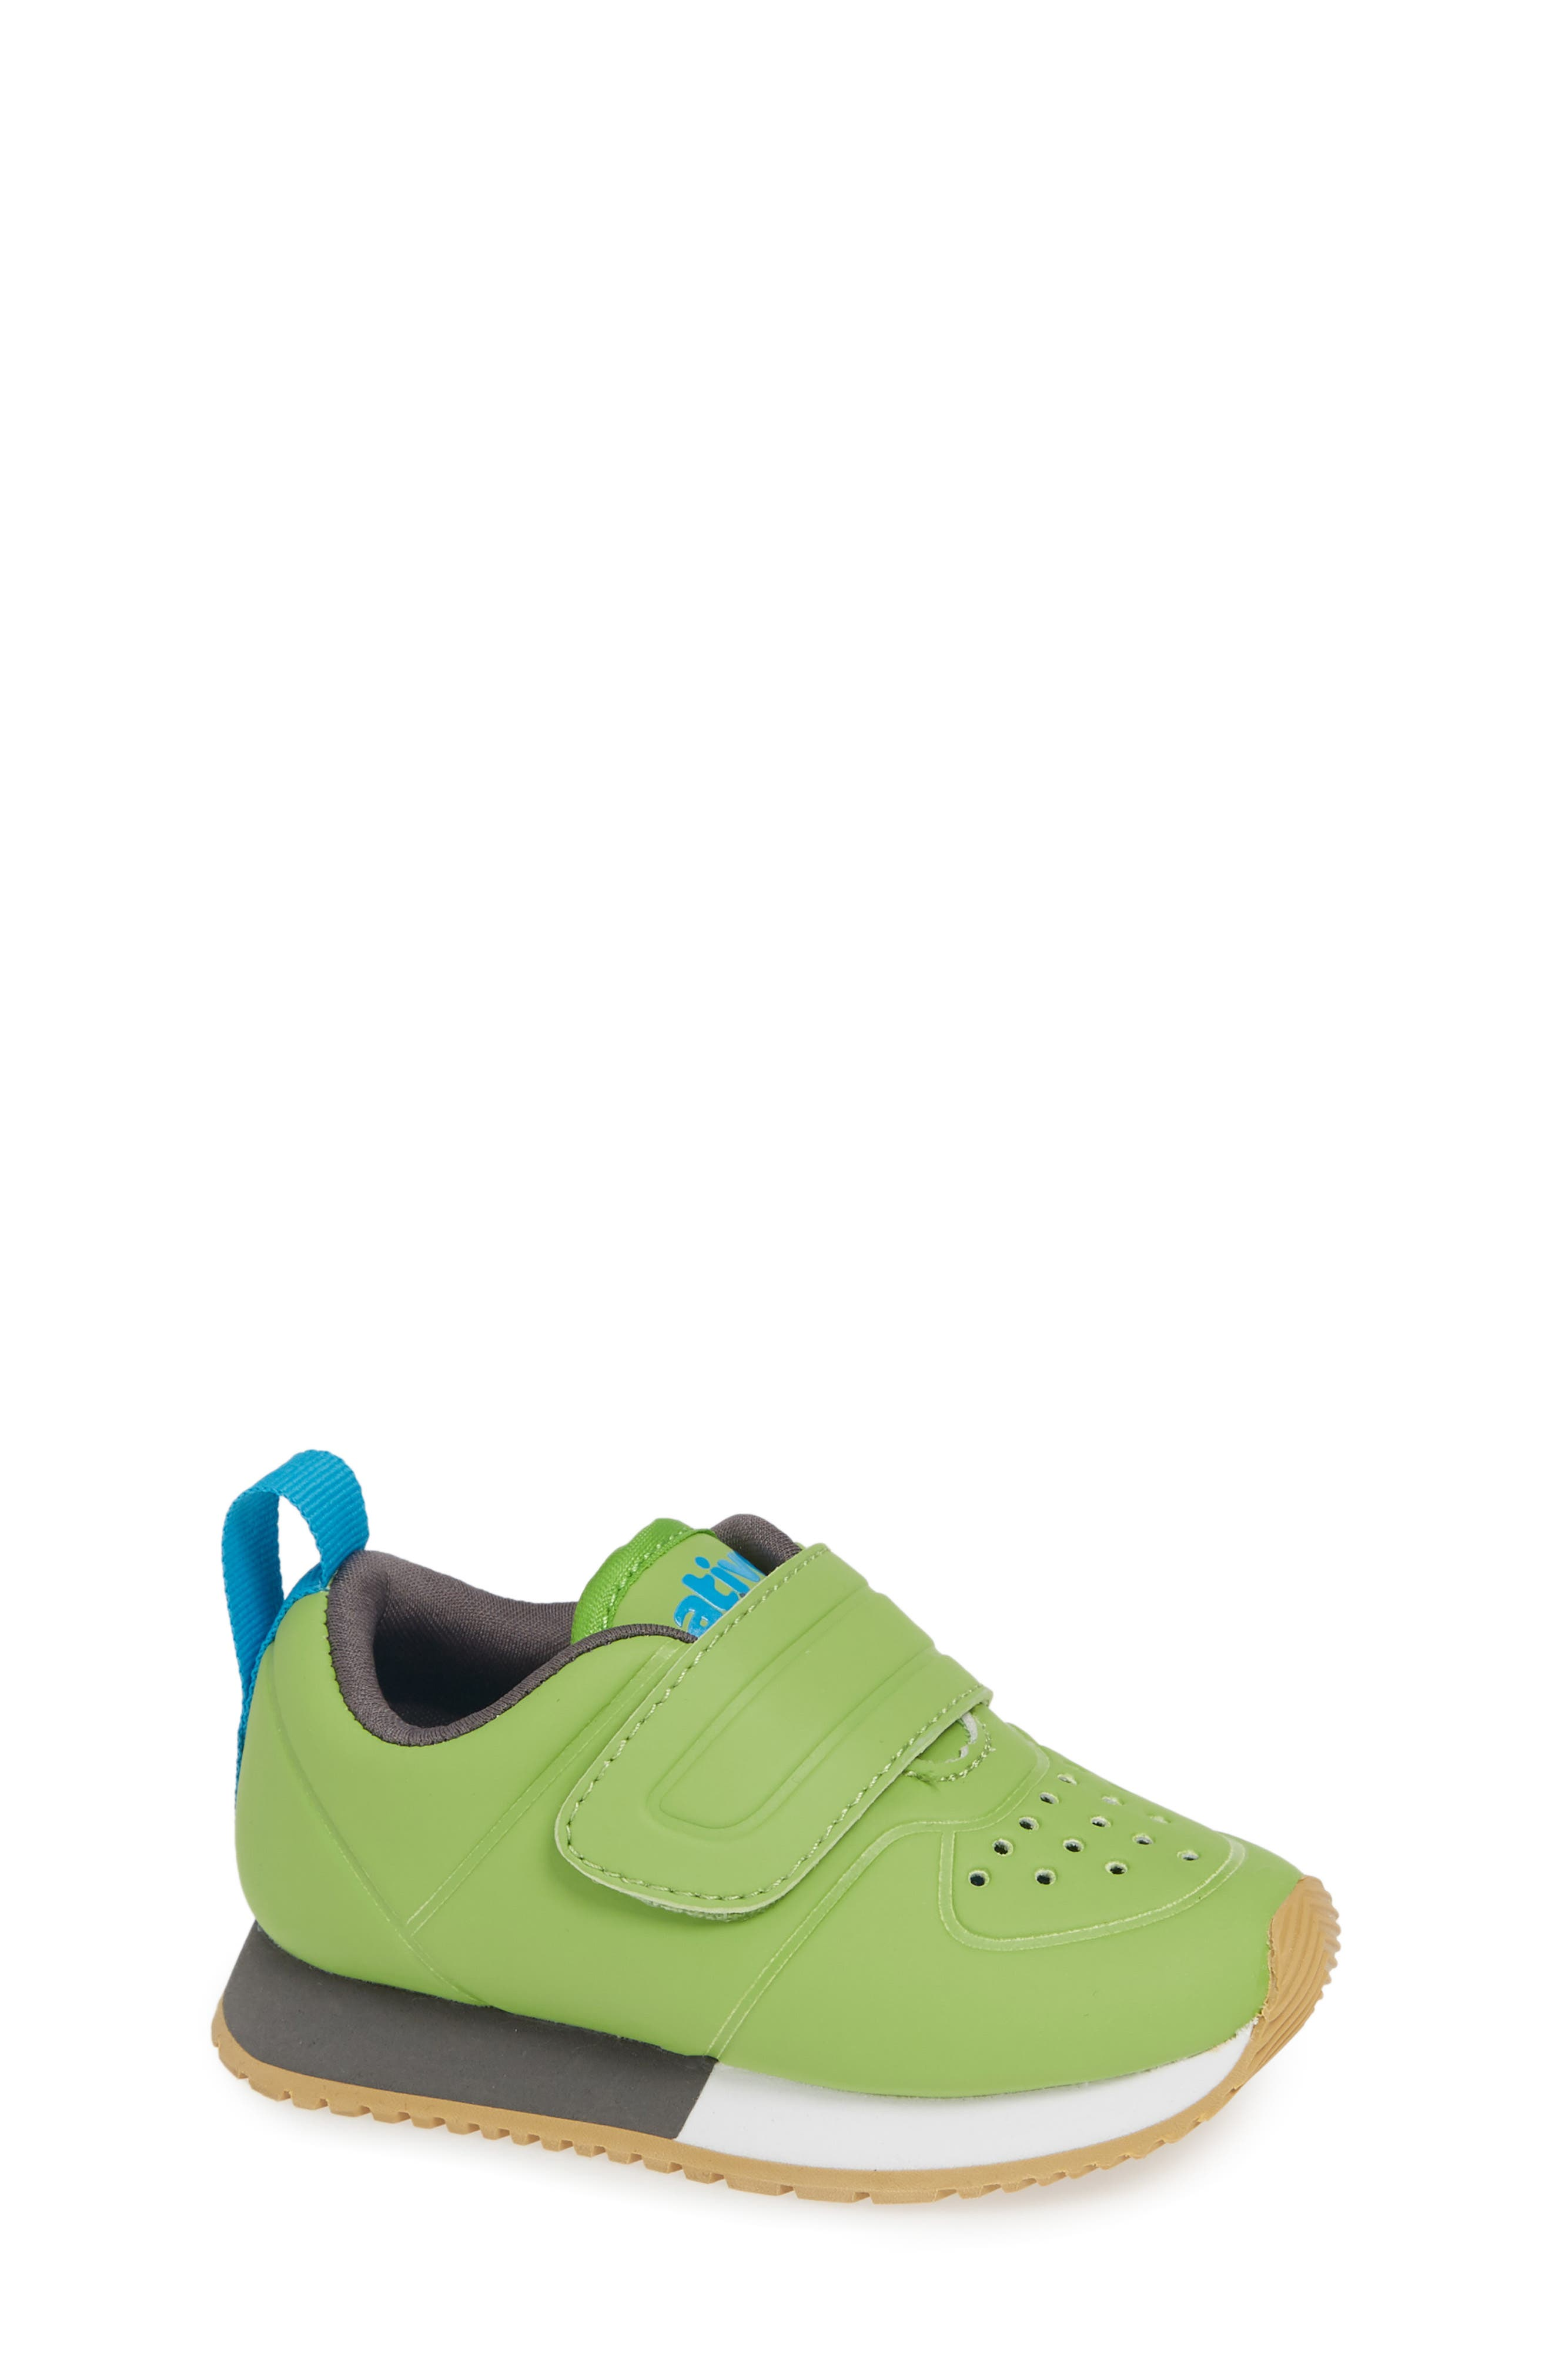 Cornell Perforated Colorblock Sneaker,                             Main thumbnail 1, color,                             SPRING GREEN/ WHITE/ GREY